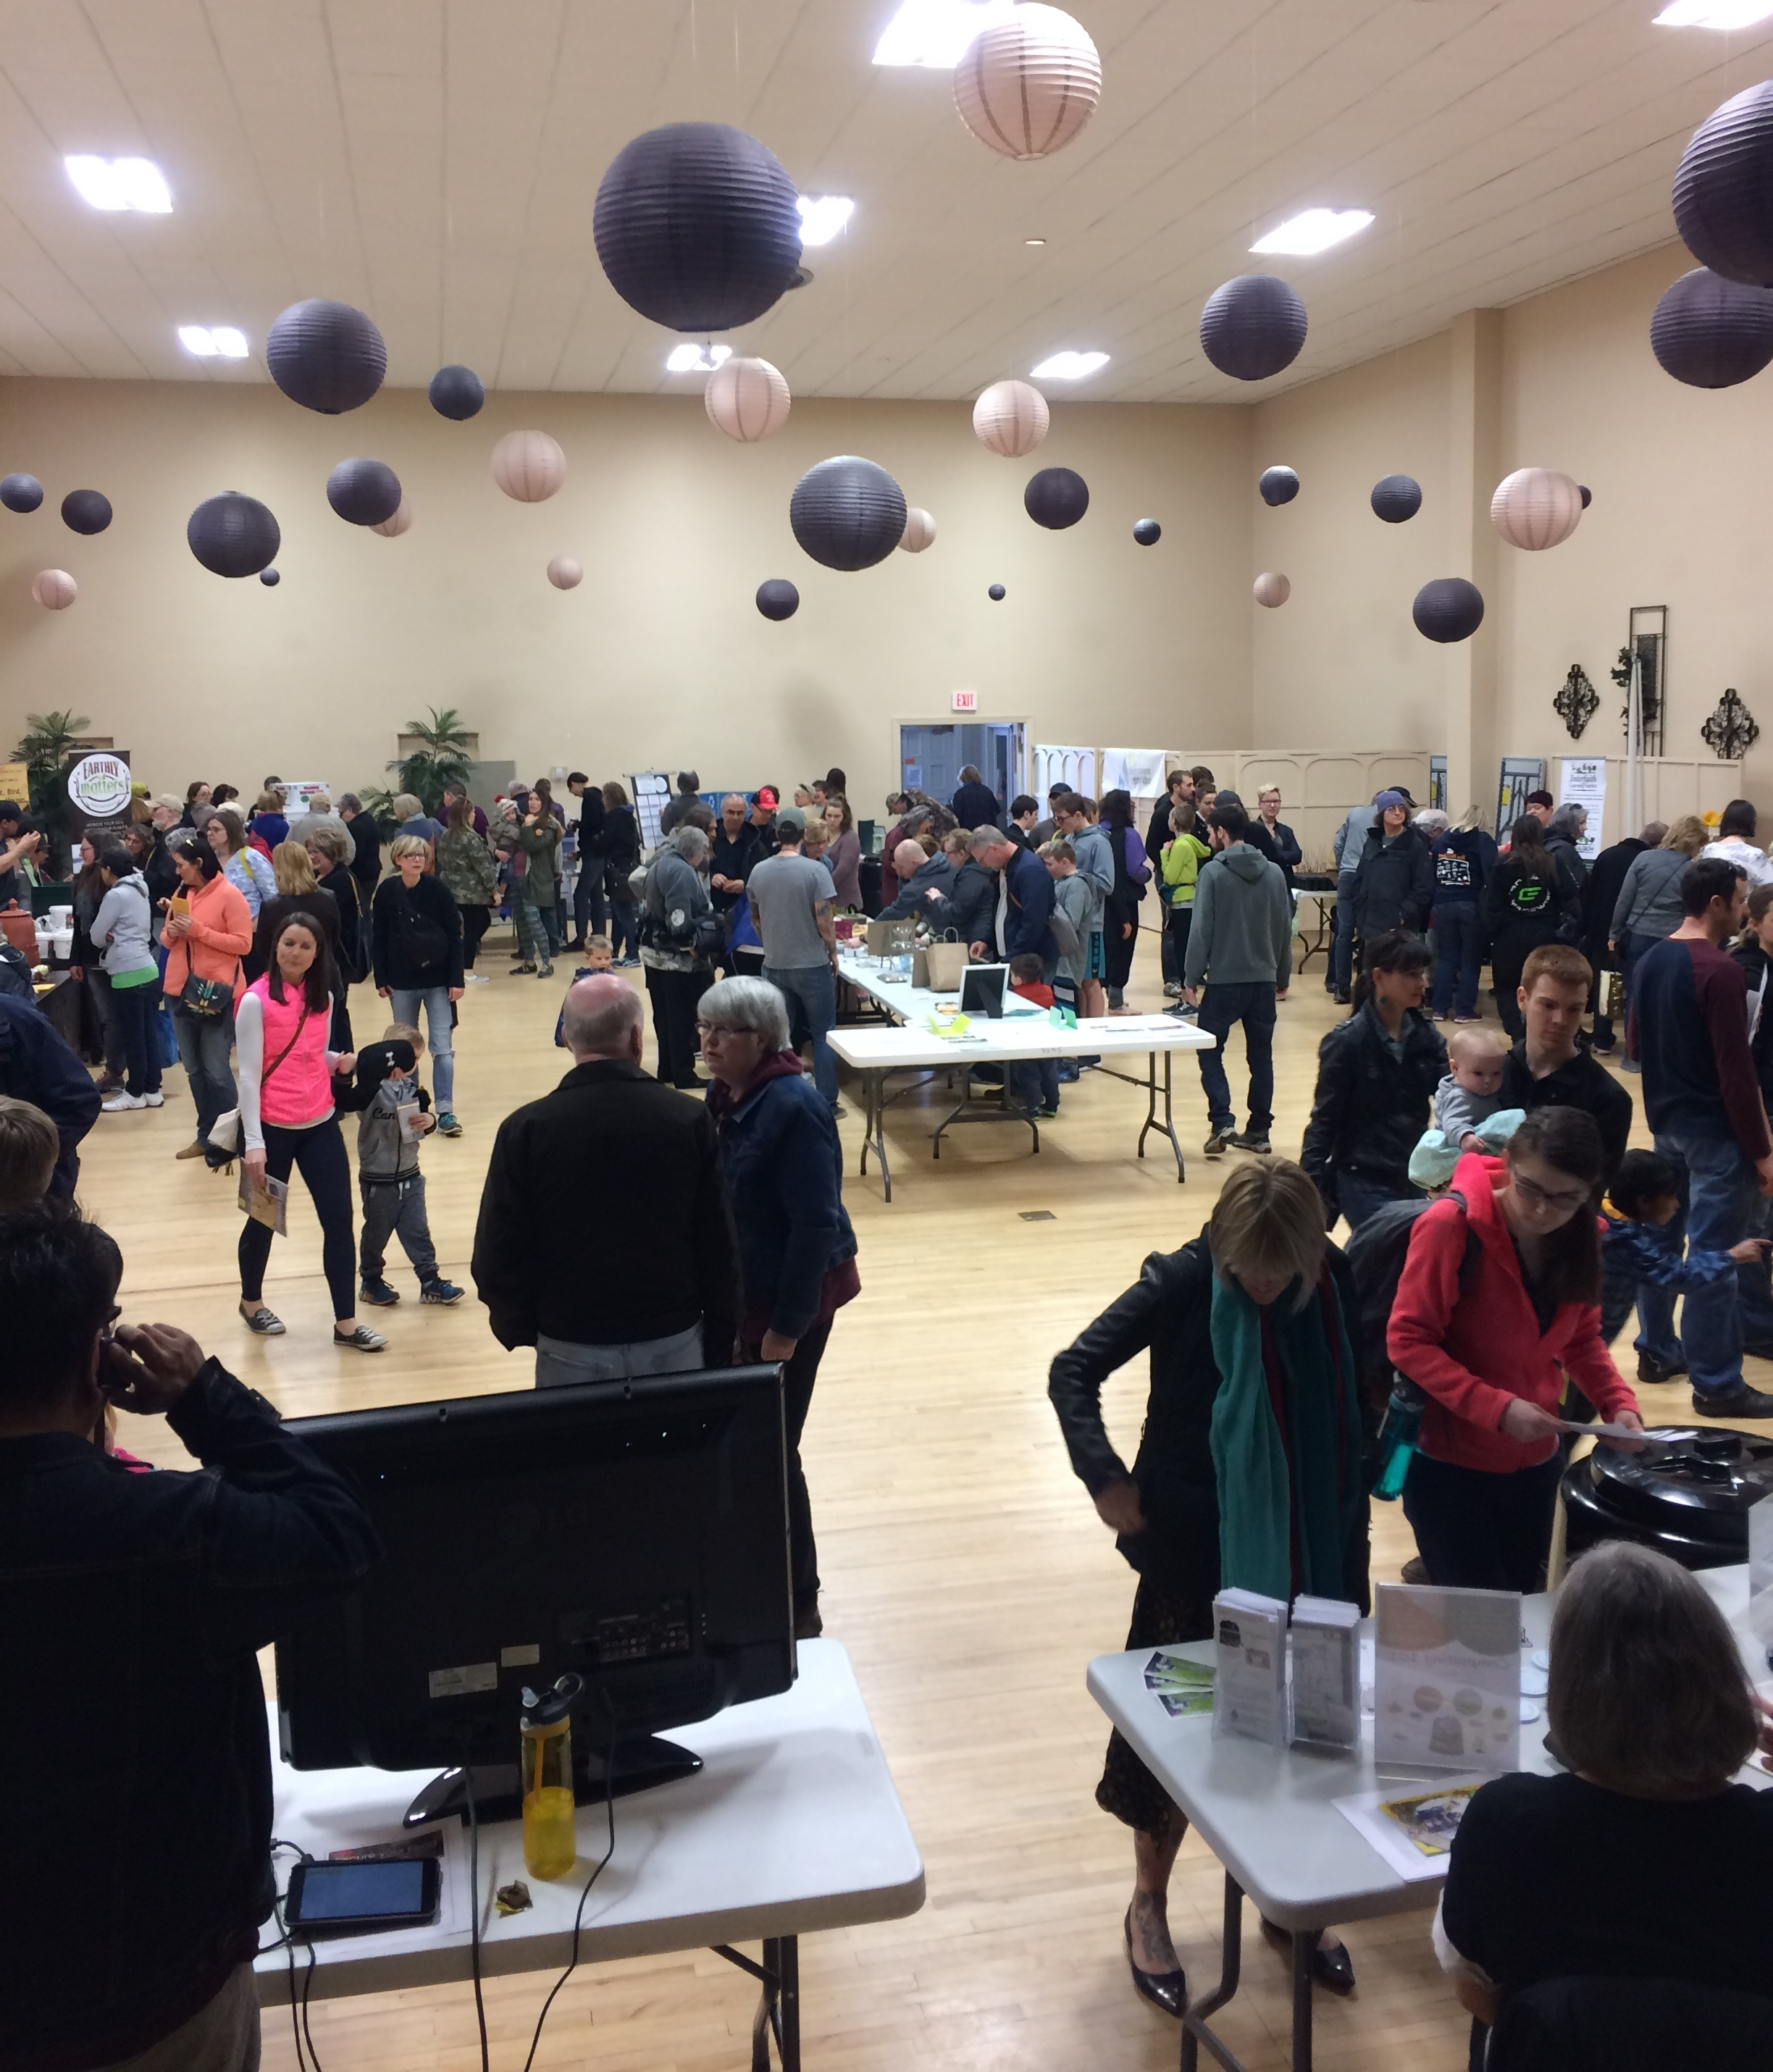 Lethbridge's first Seedy Saturday on March 25, 2017